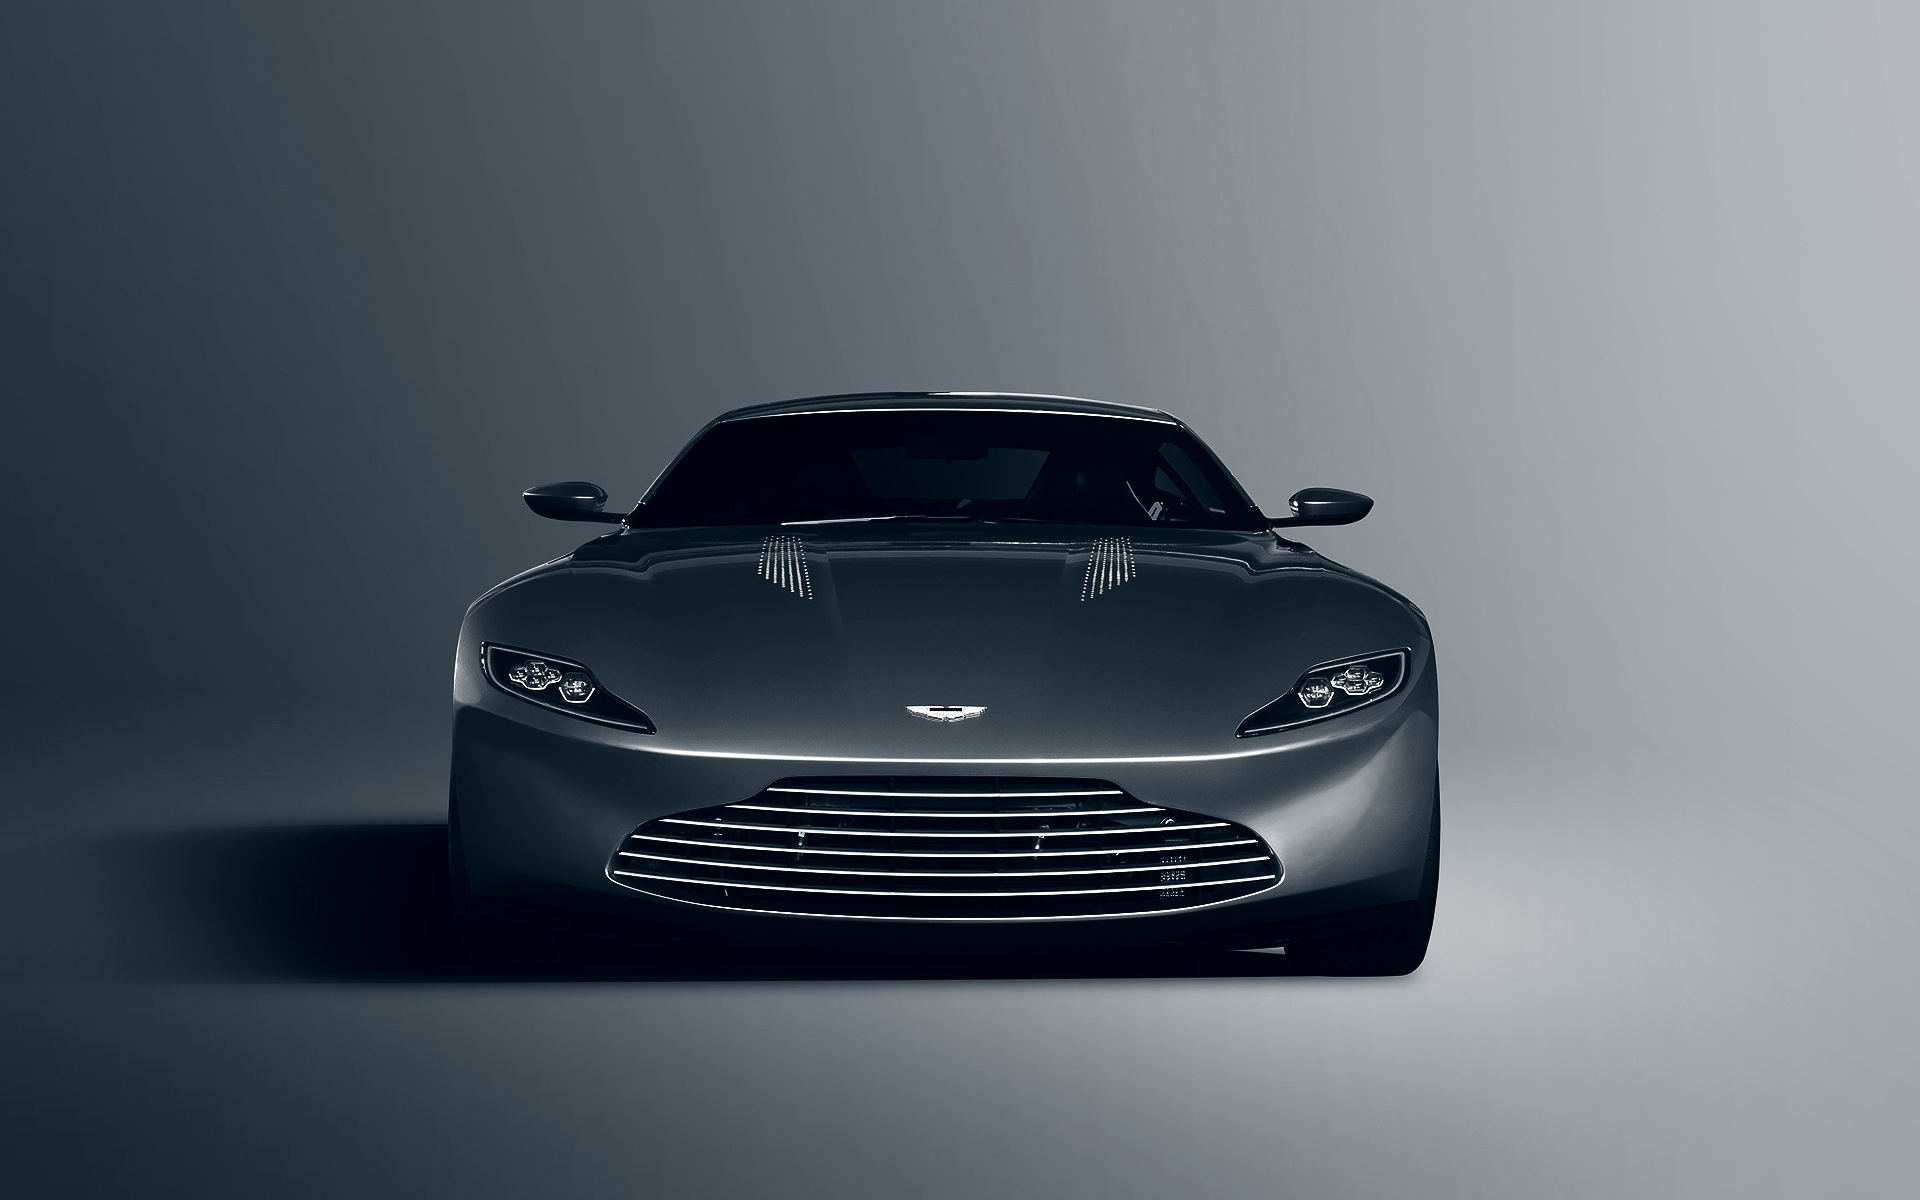 aston martin db10 wallpaper | hd car wallpapers | id #5948